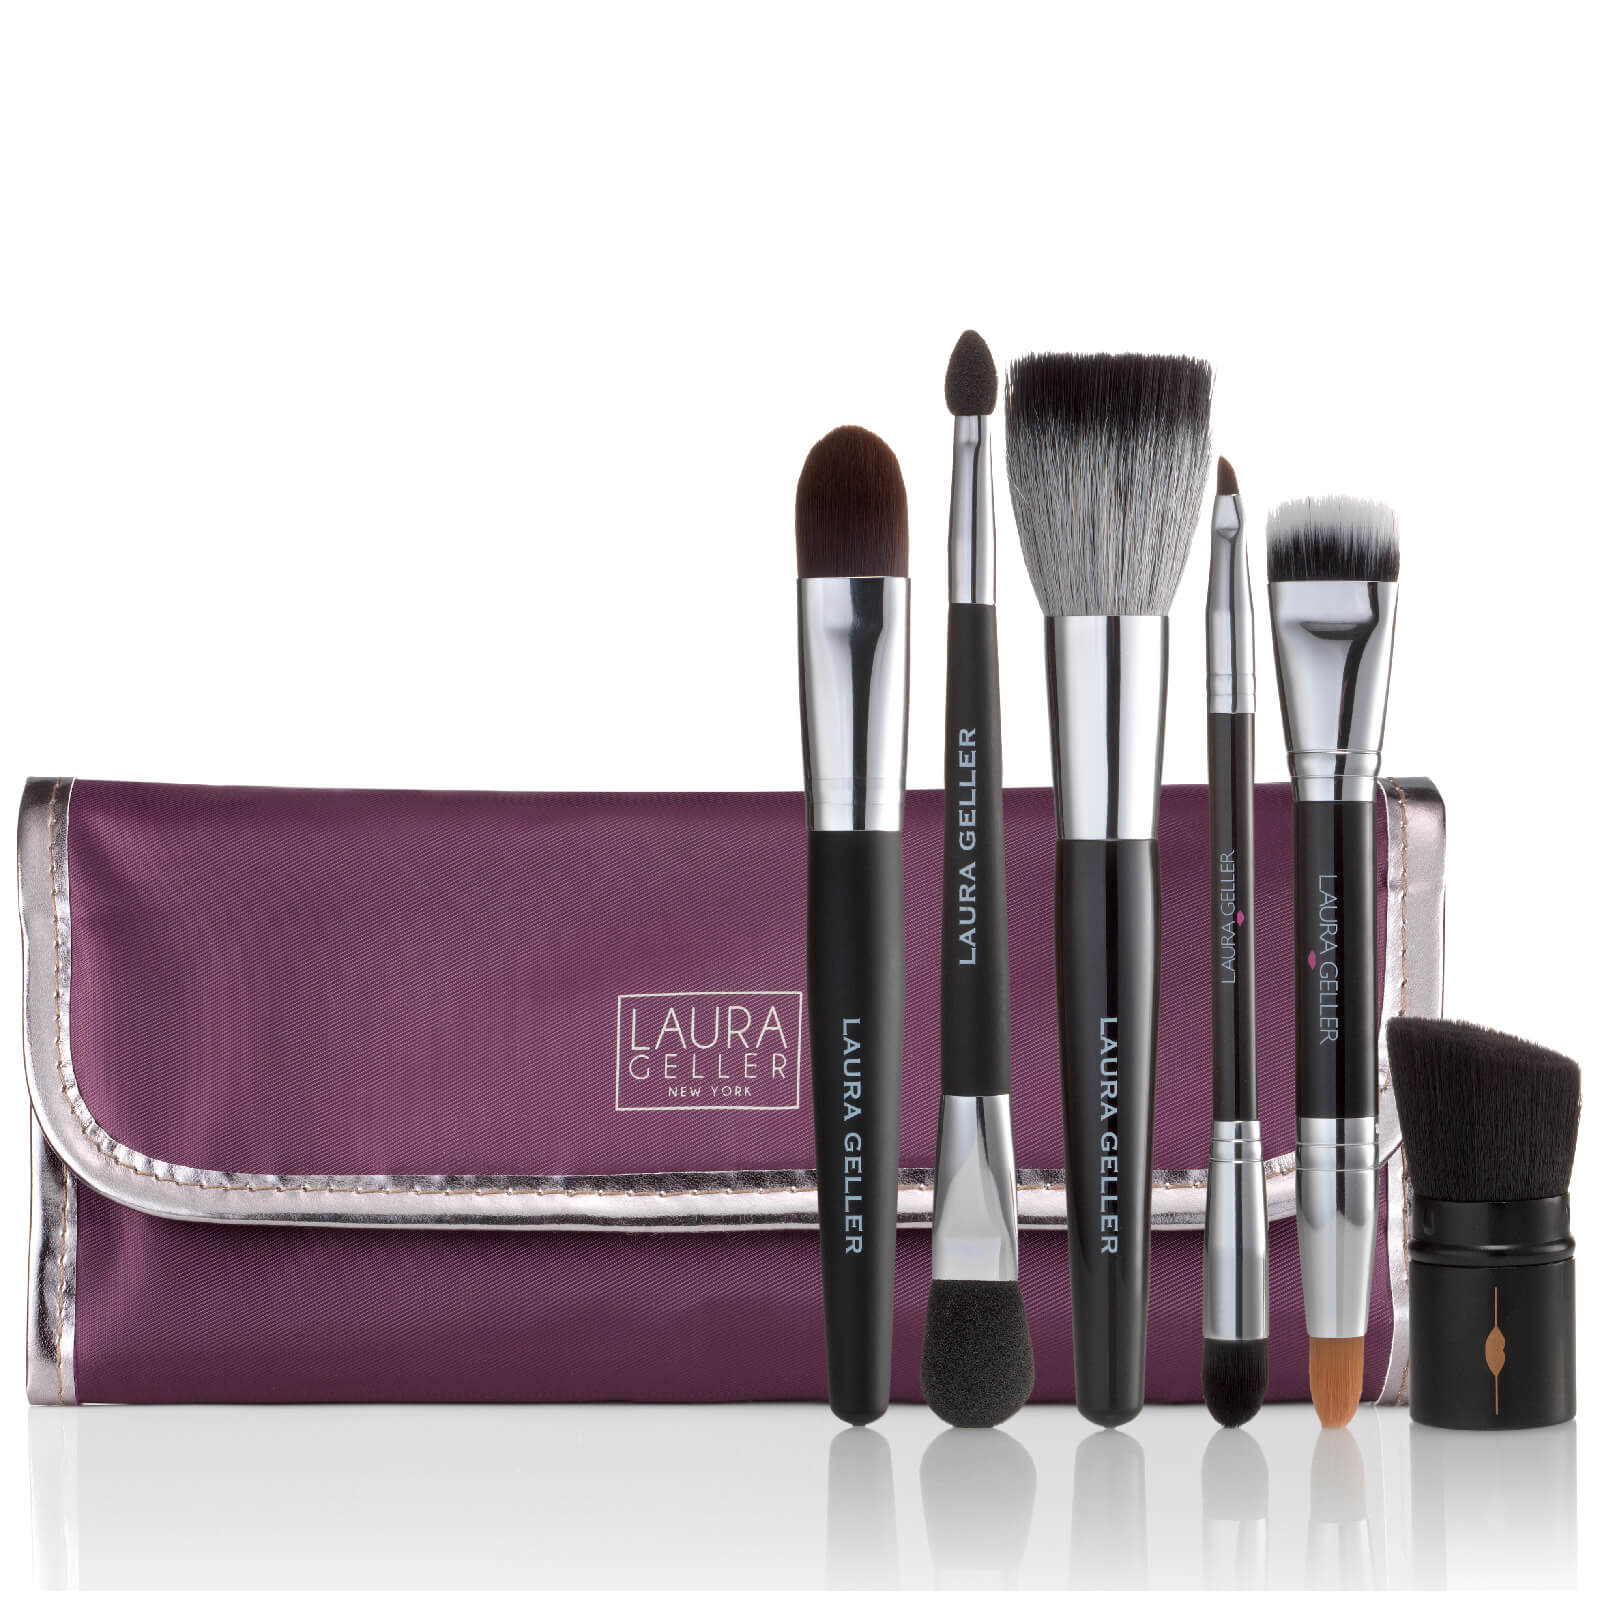 Laura Geller Brush Artist Collection (Worth £92)